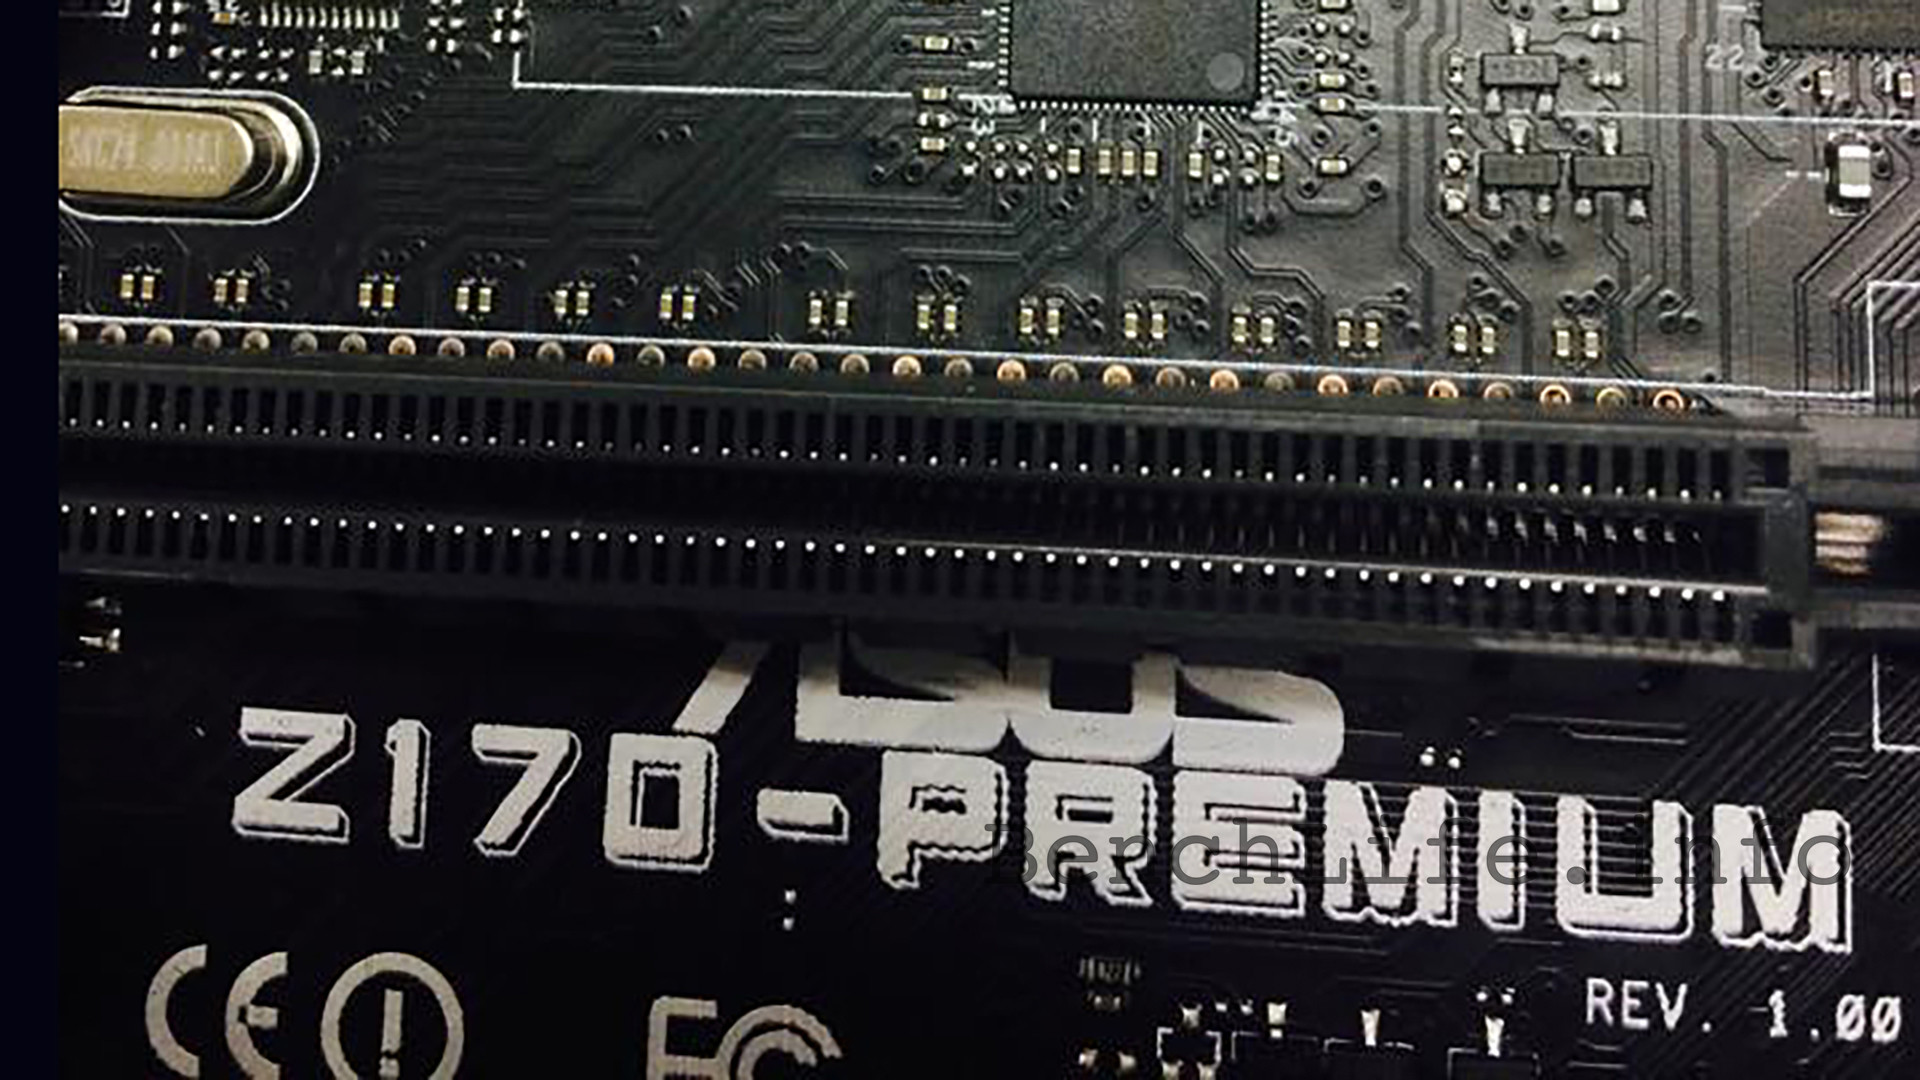 ASUS Z170-Premium to contain Thunderbolt 3 and a U.2 port